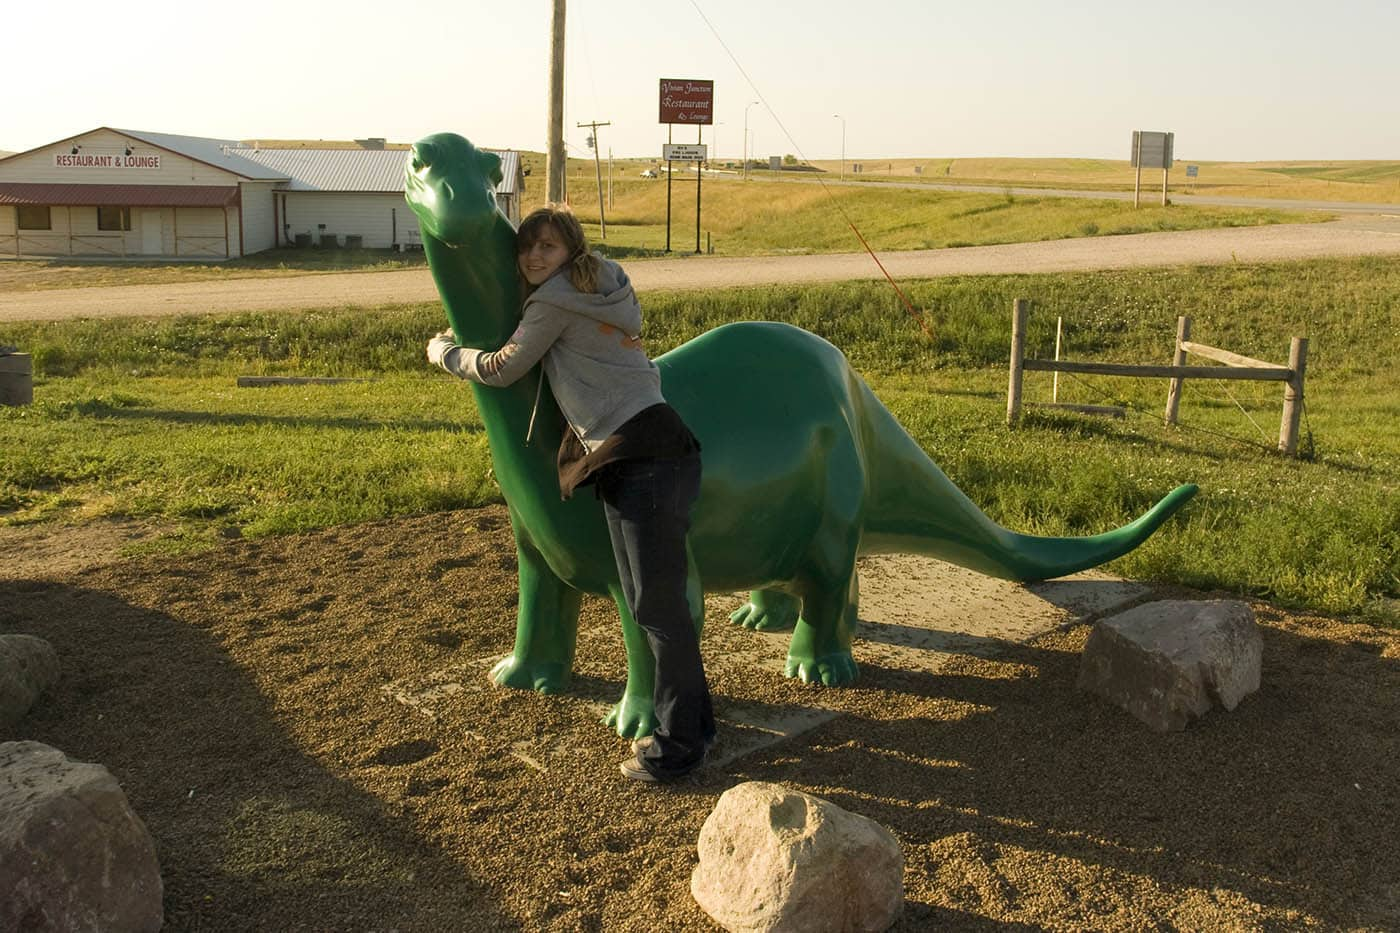 Sinclair Dinosaur roadside attraction in South Dakota. Labor Day Chicago to Mount Rushmore Road Trip.